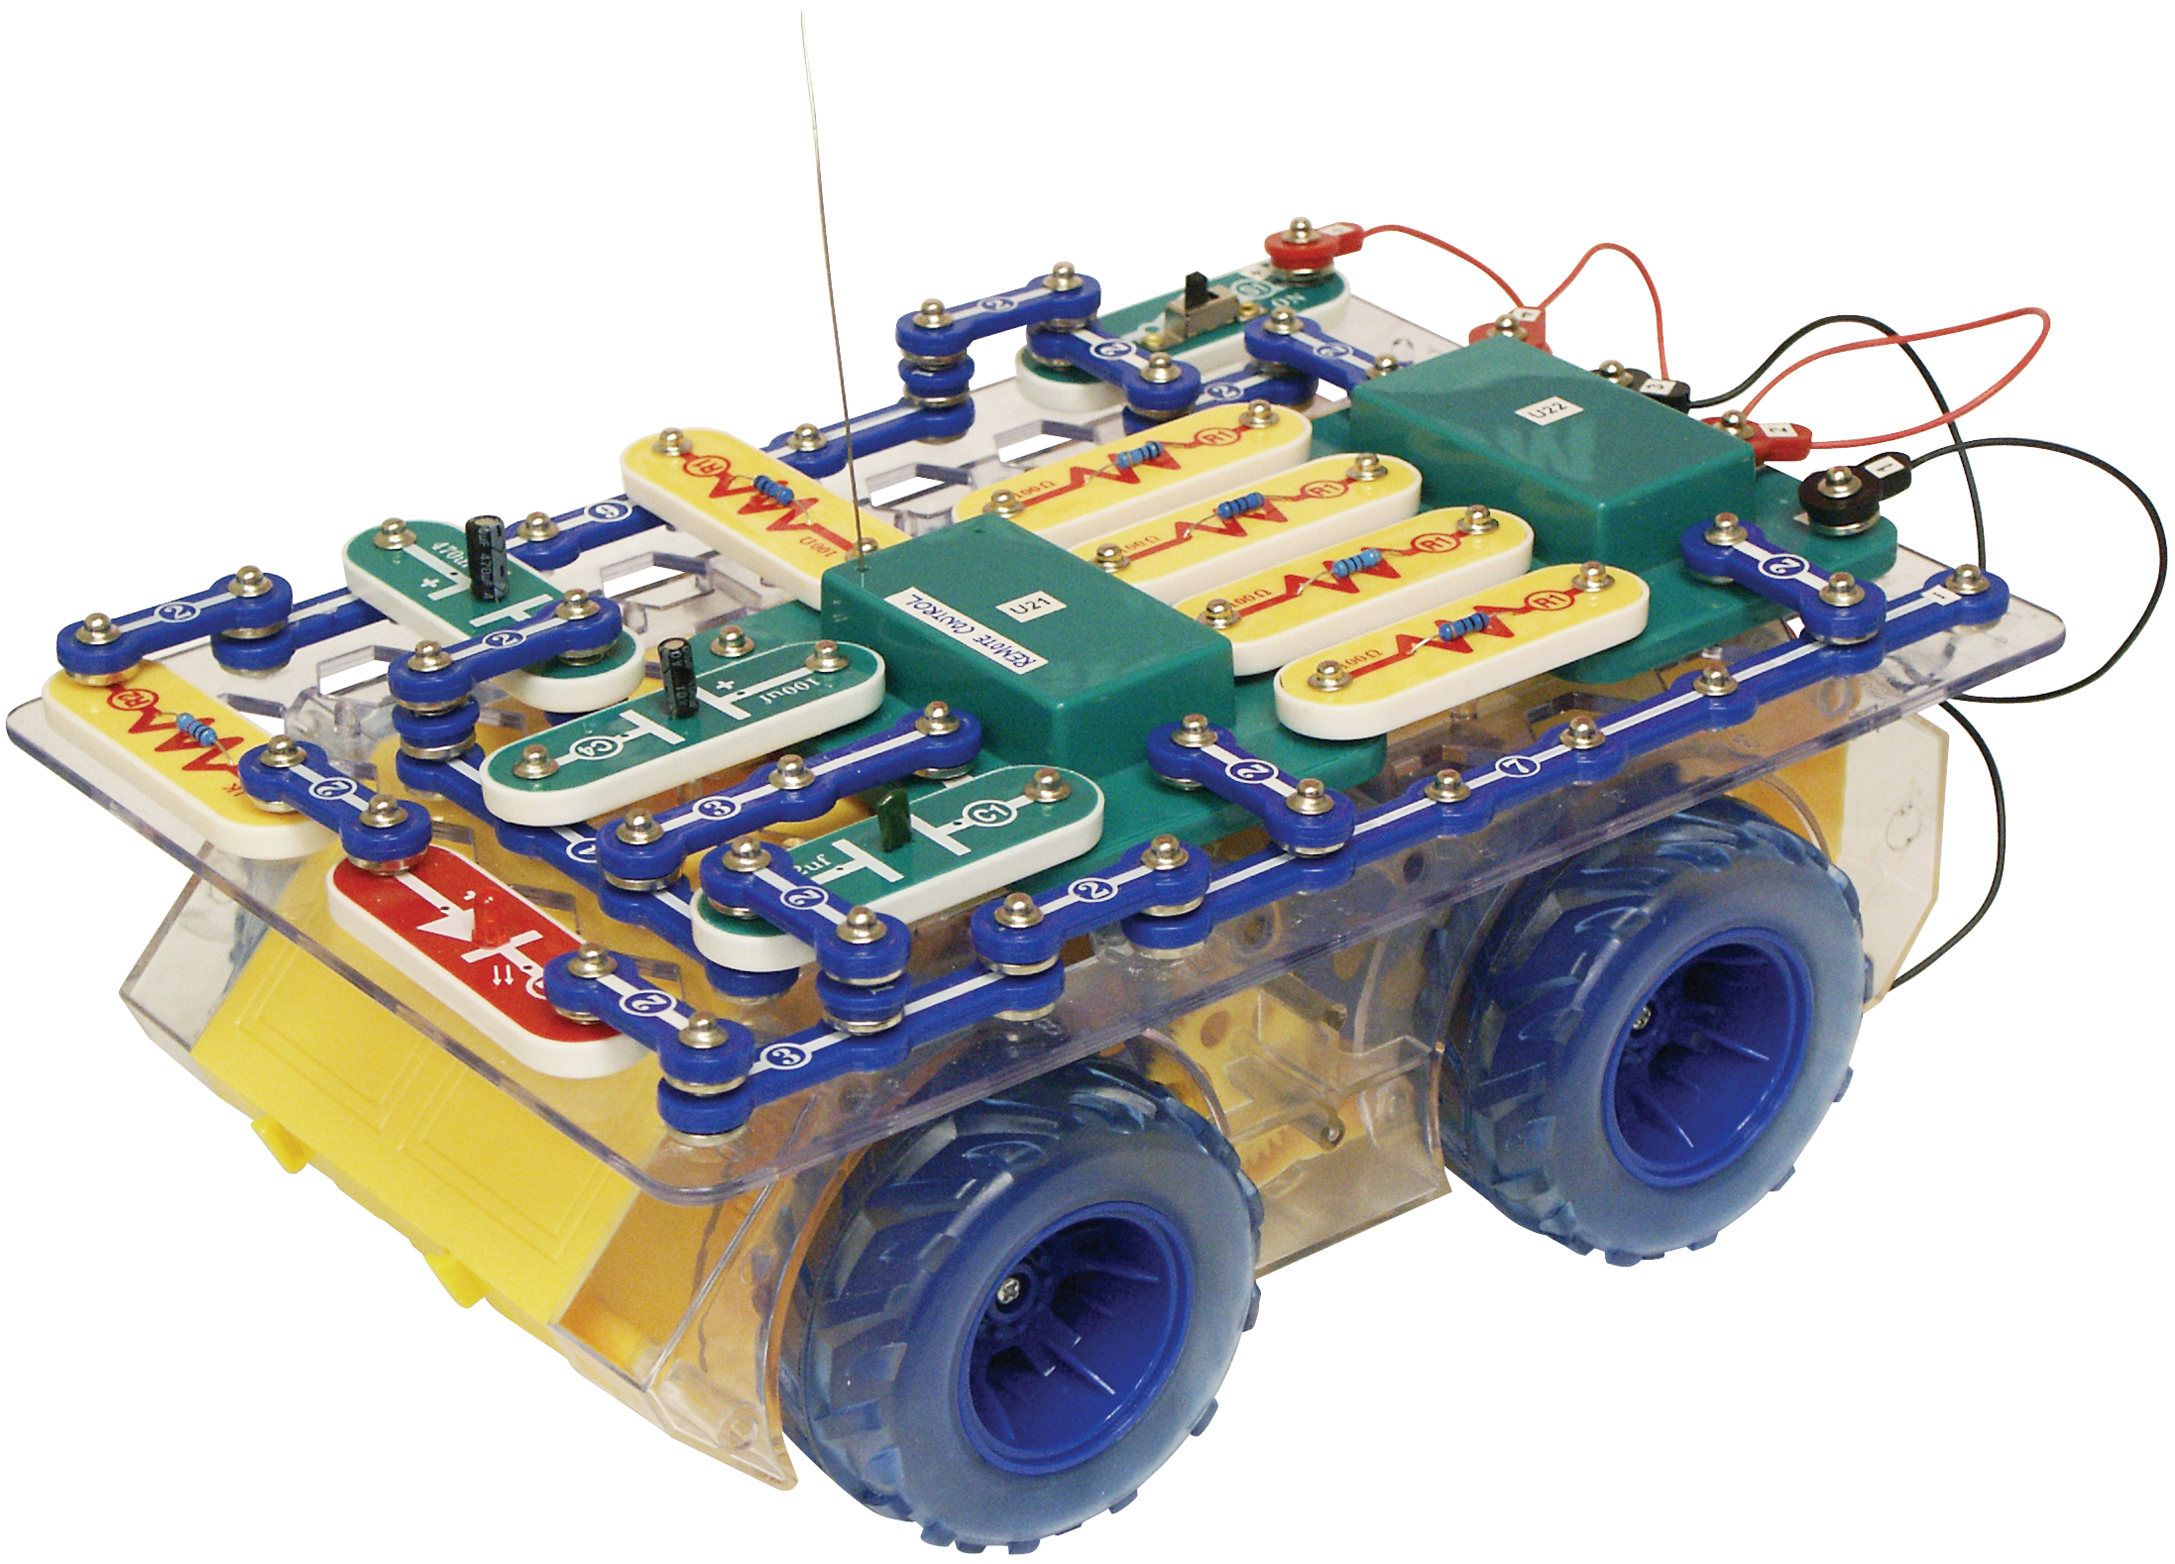 In1 Universal Remote Control By Circuit Electronics For The Home Elenco Snap Circuits Rover Kit Scrov 10